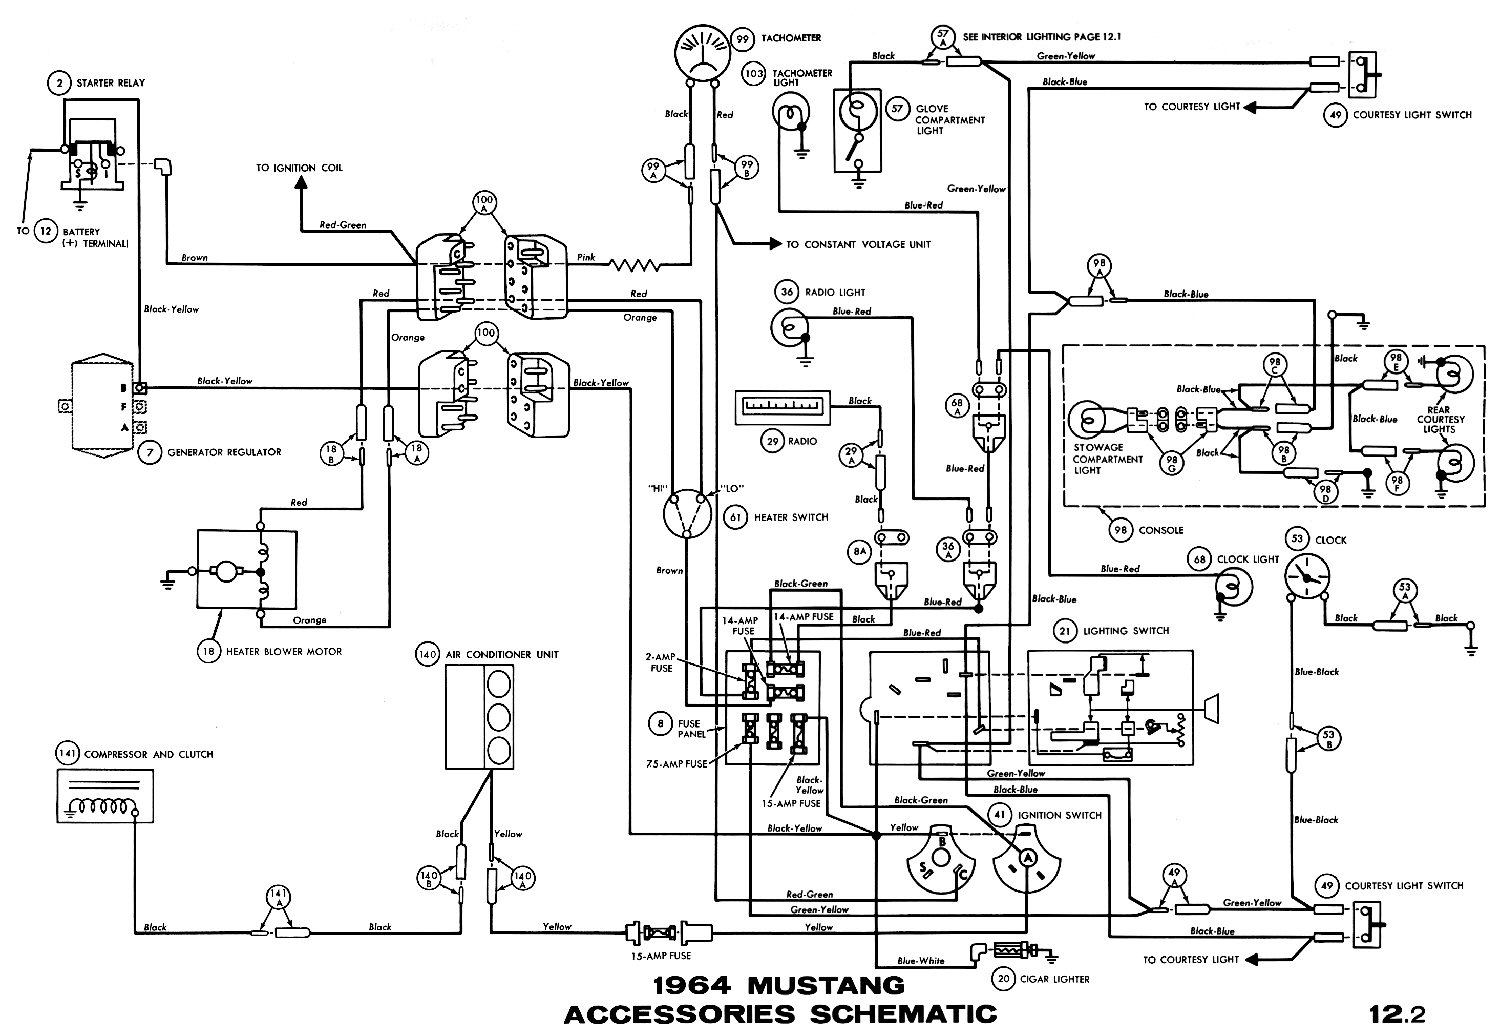 1964m 66 mustang wiring diagram radio tape 66 mustang fuse diagram res radio wiring diagram at alyssarenee.co